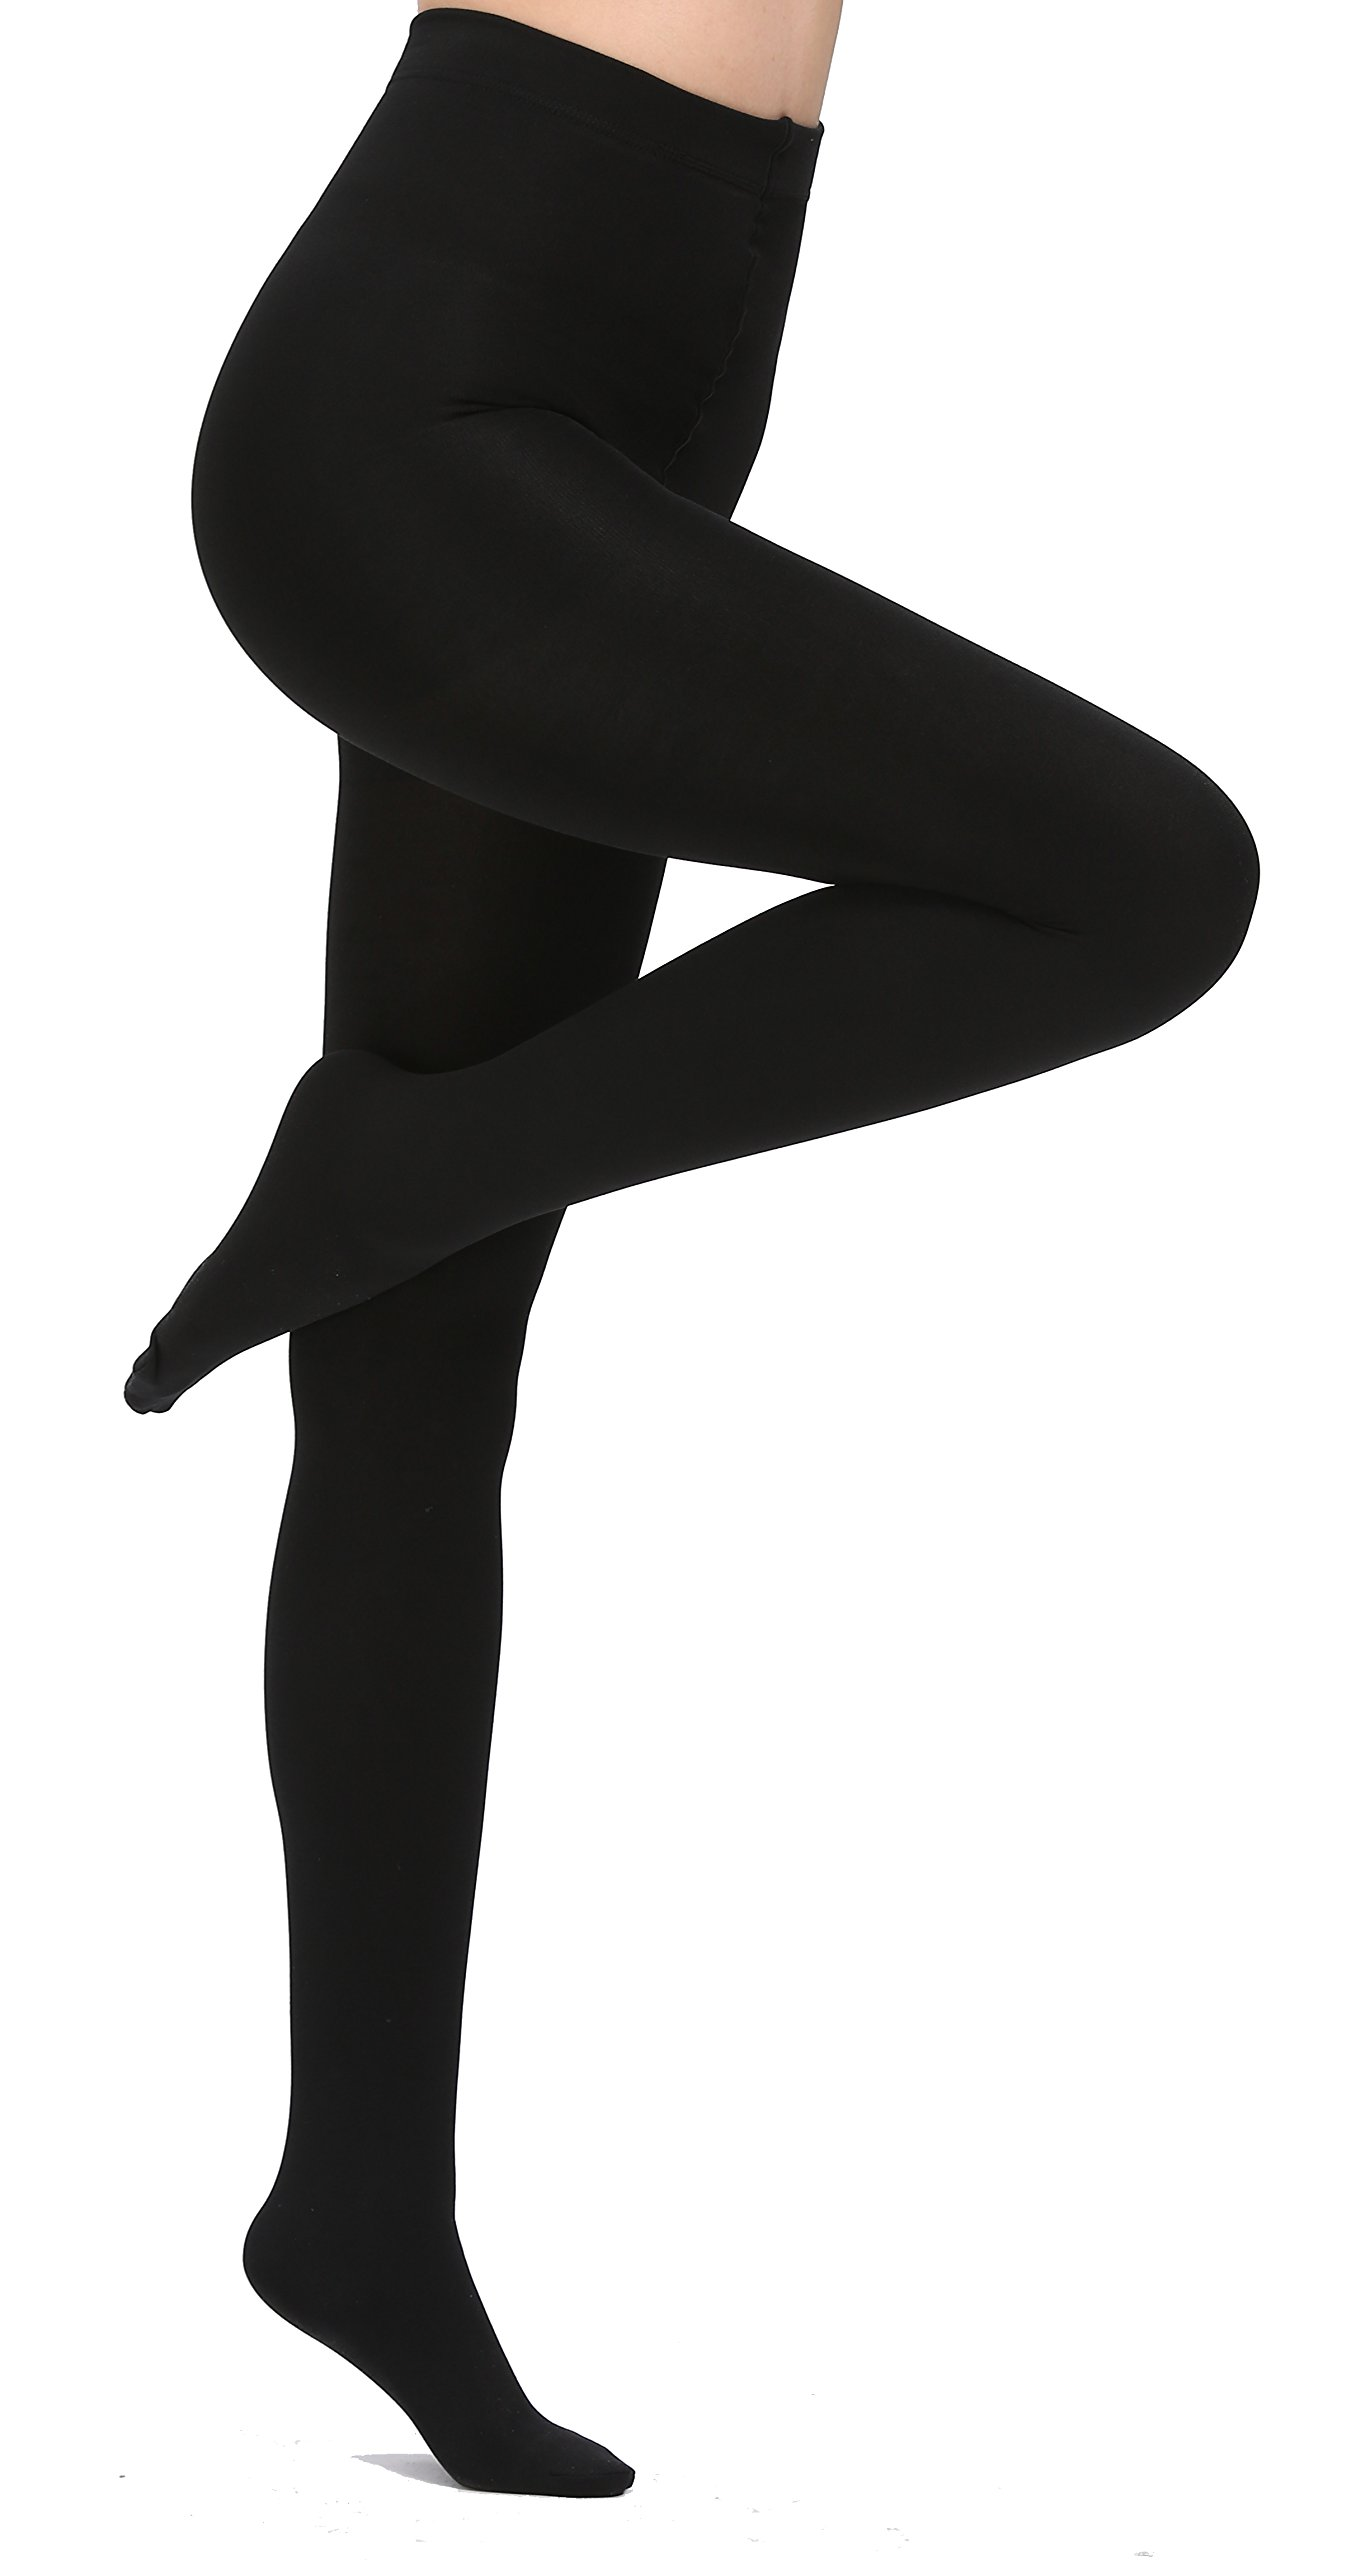 Aphro Women's Opaque Warm Tights Fleece Lining Pantyhose, Large - Black